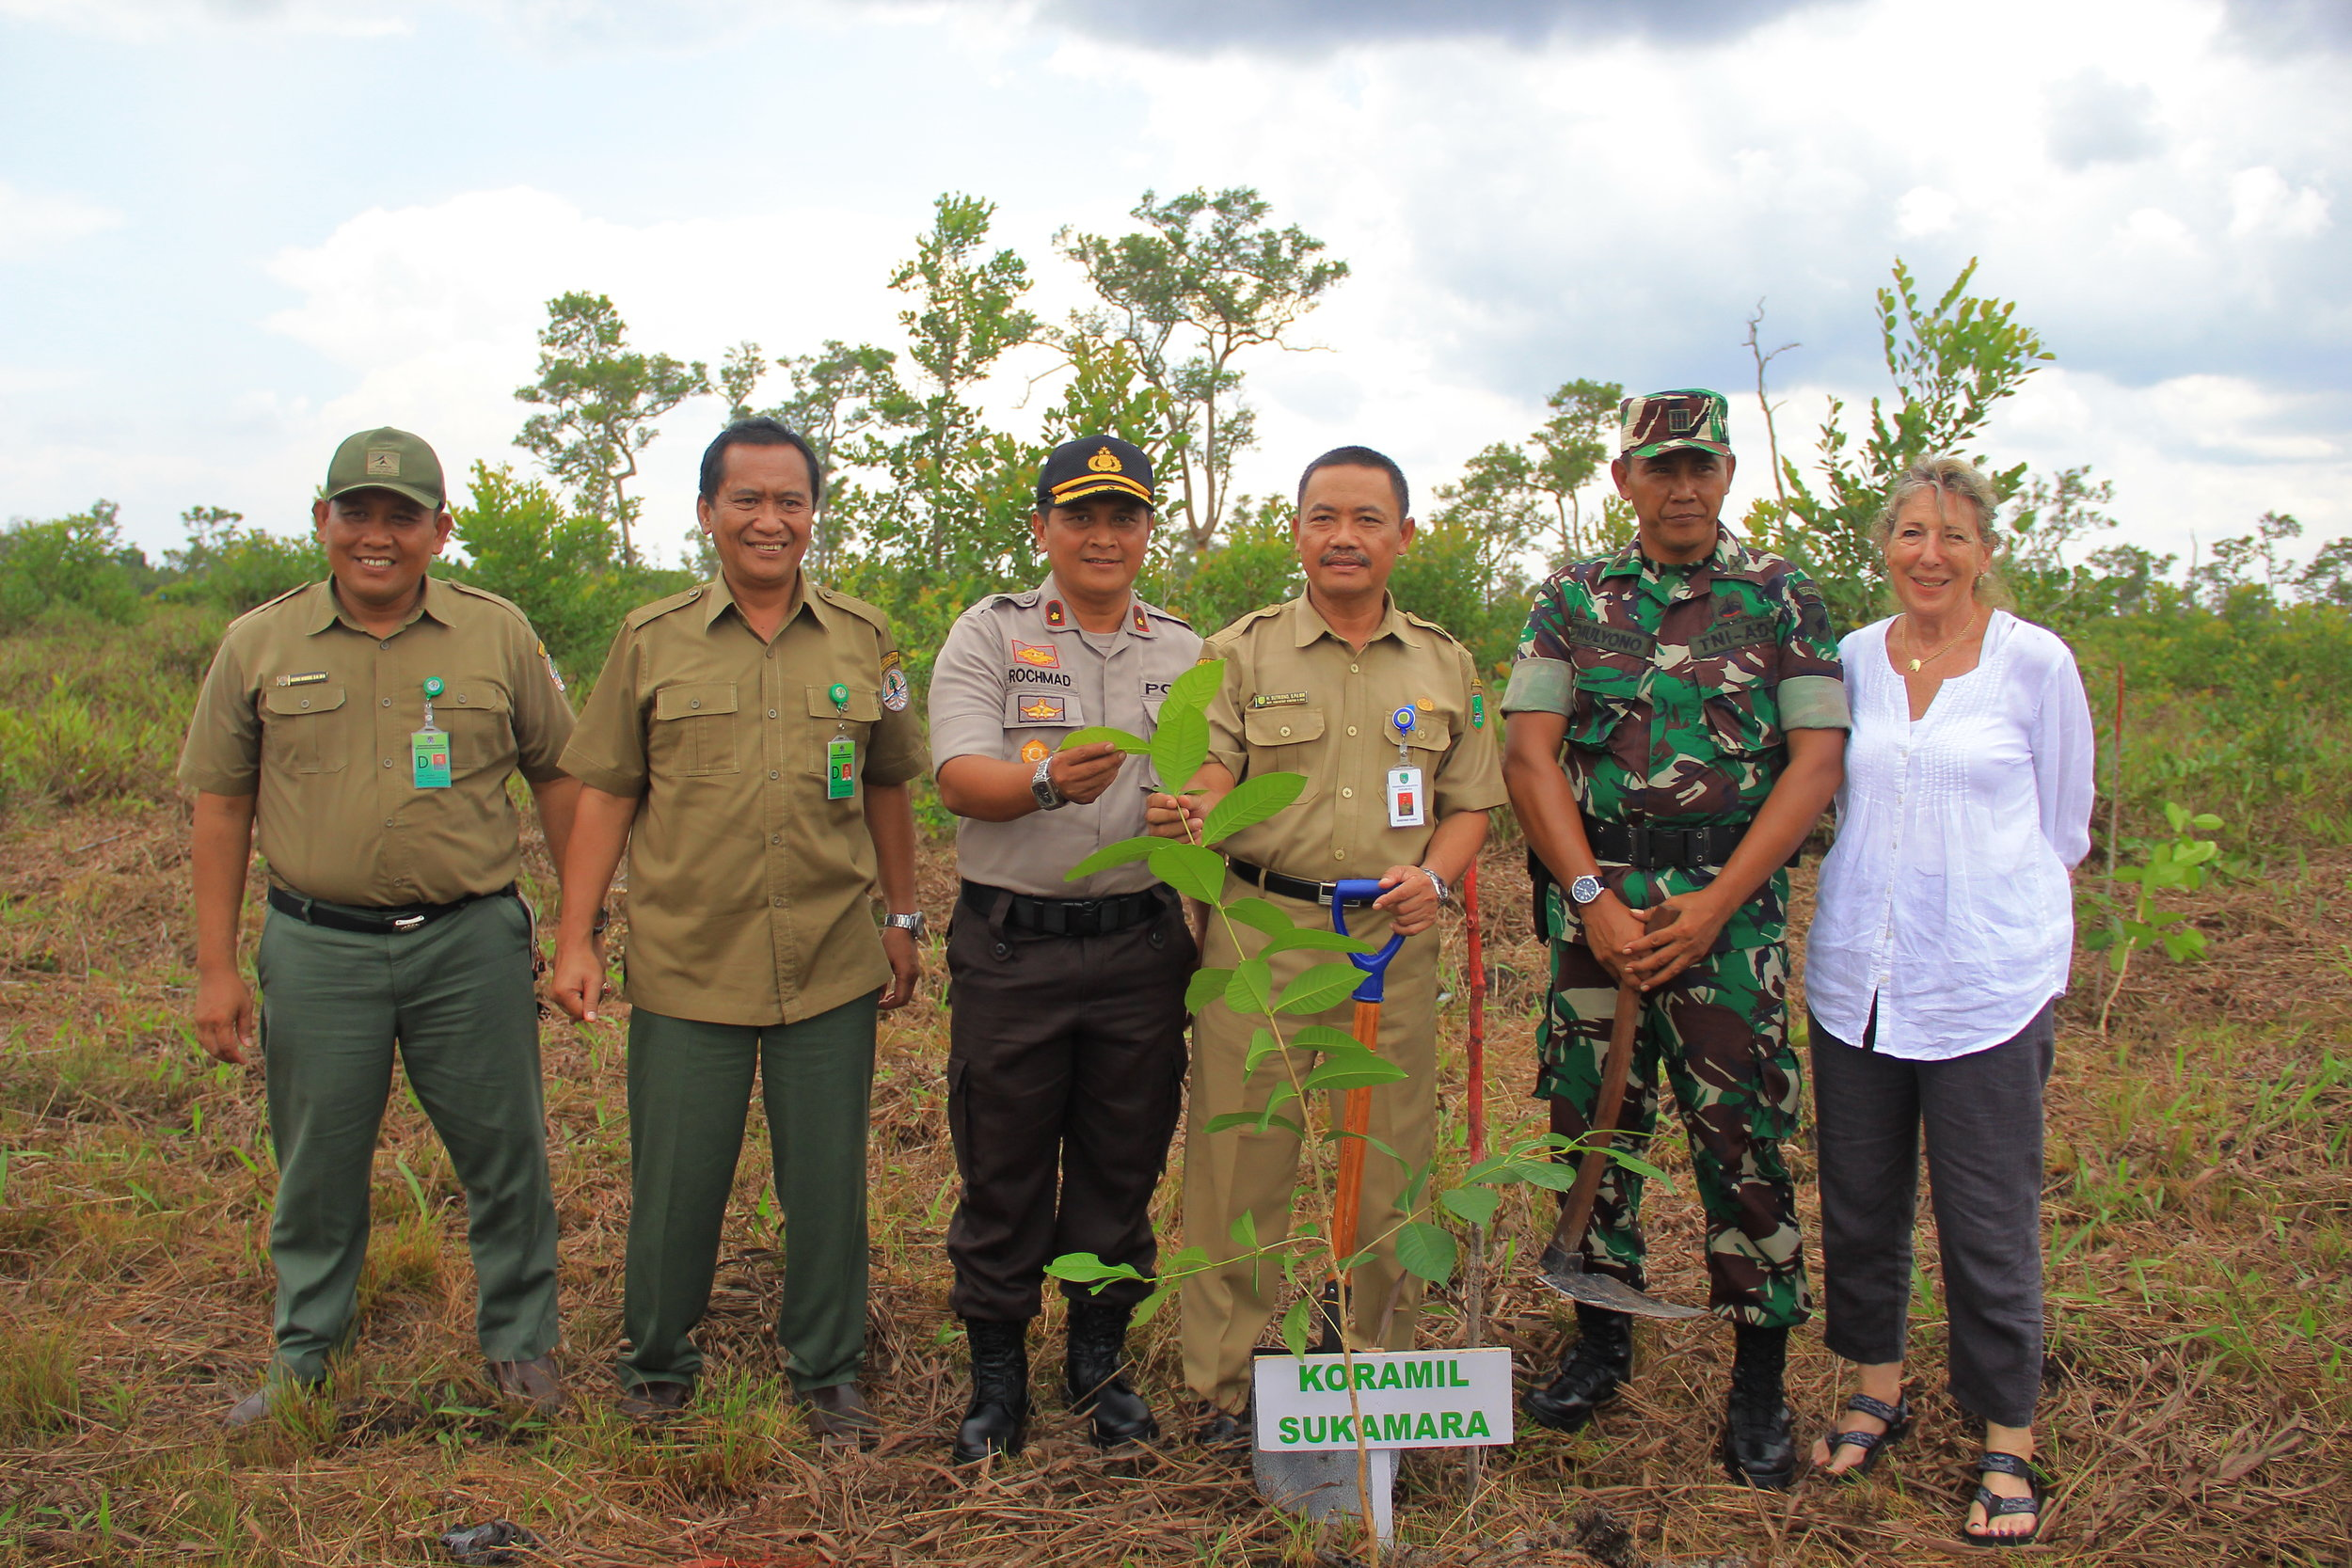 OF Director Ashley Leiman OBE with Pak Adib, new head of BKSDA, and government officials from Sukamara. Image© Orangutan Foundation.